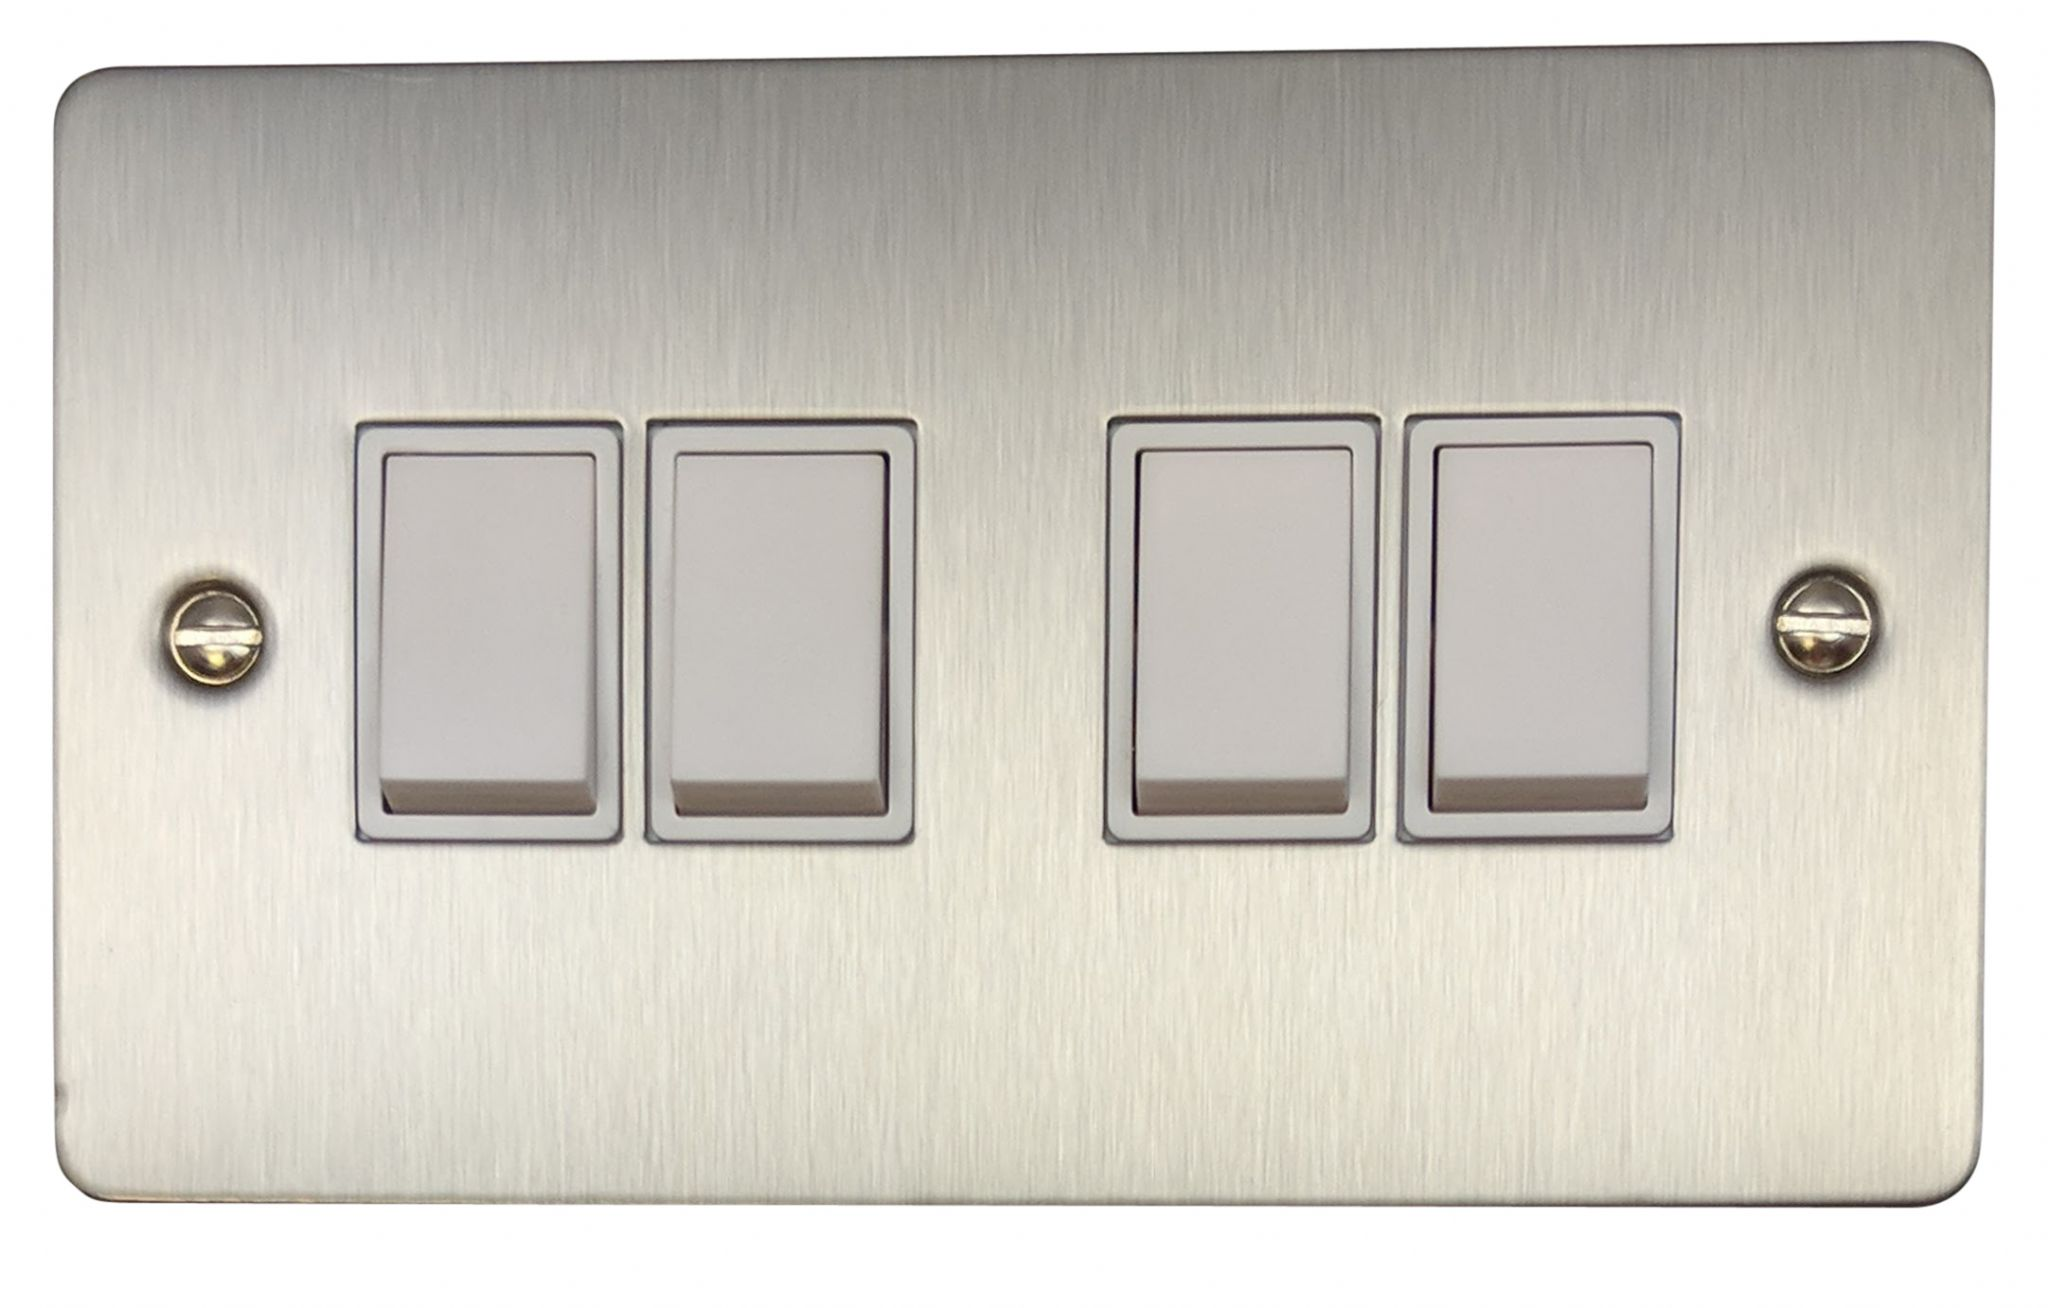 G Amp H Fss4w Flat Plate Brushed Steel 4 Gang 1 Or 2 Way